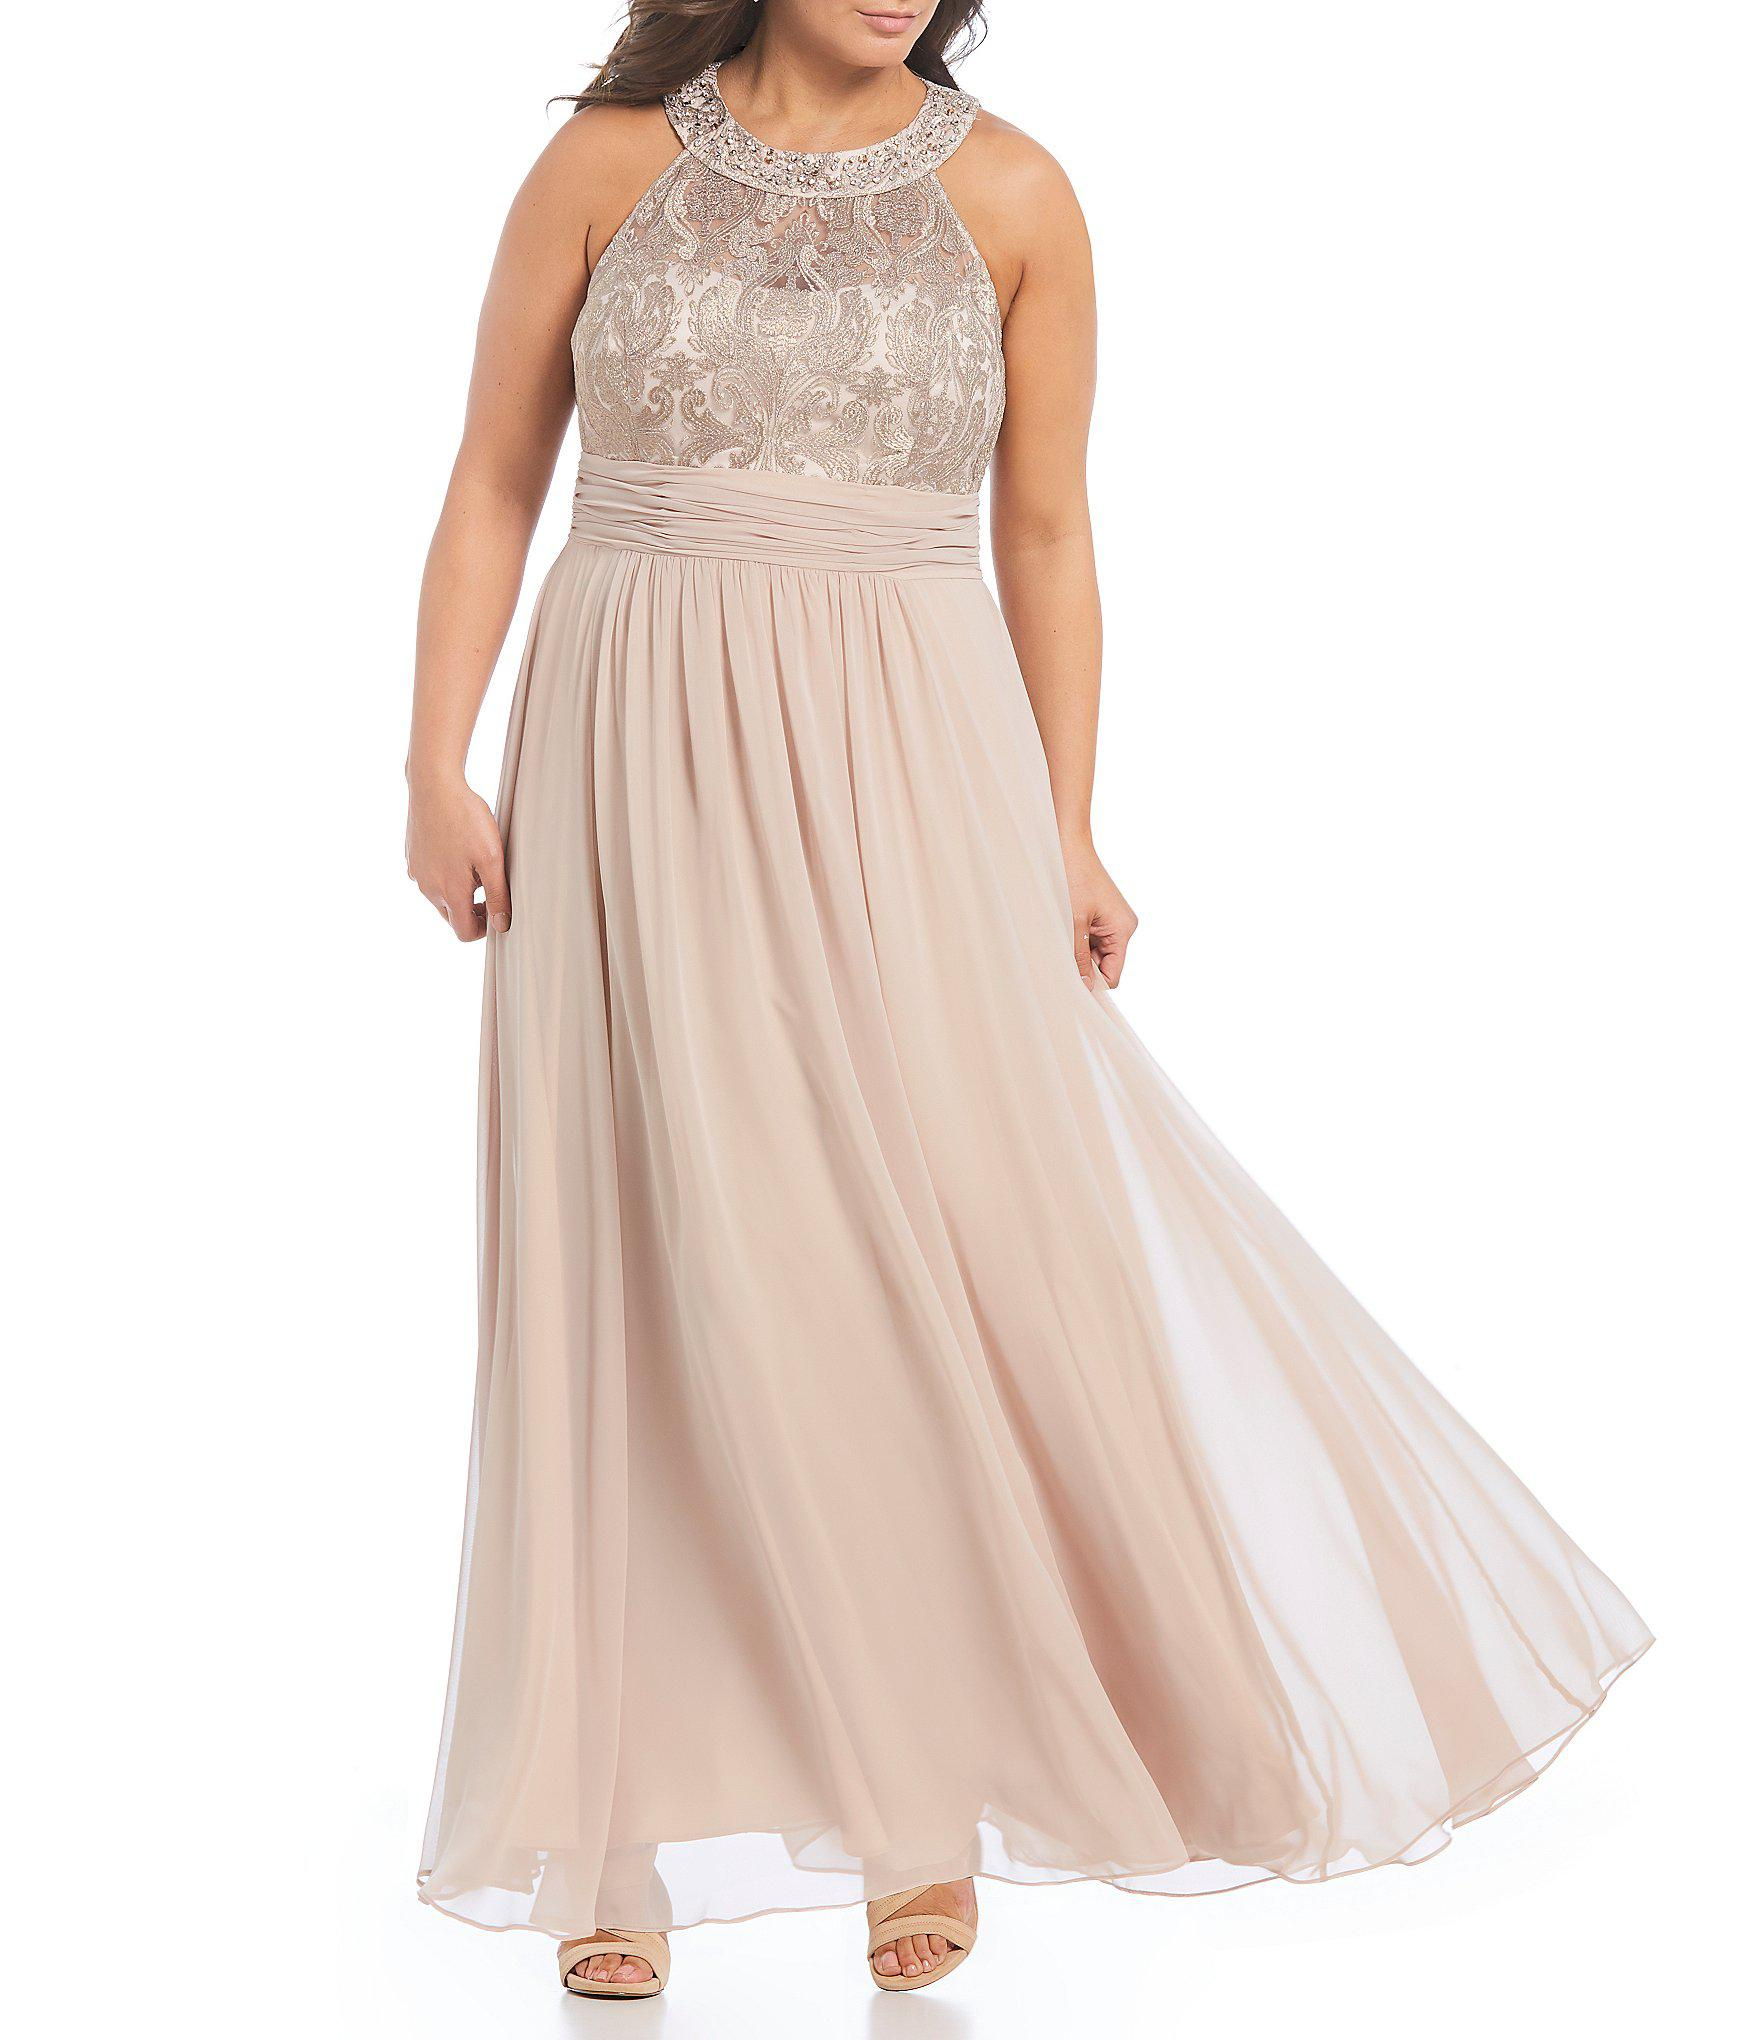 5379b778fdc Eliza J Plus Size Halter Sequin Lace Chiffon Gown in Natural - Lyst